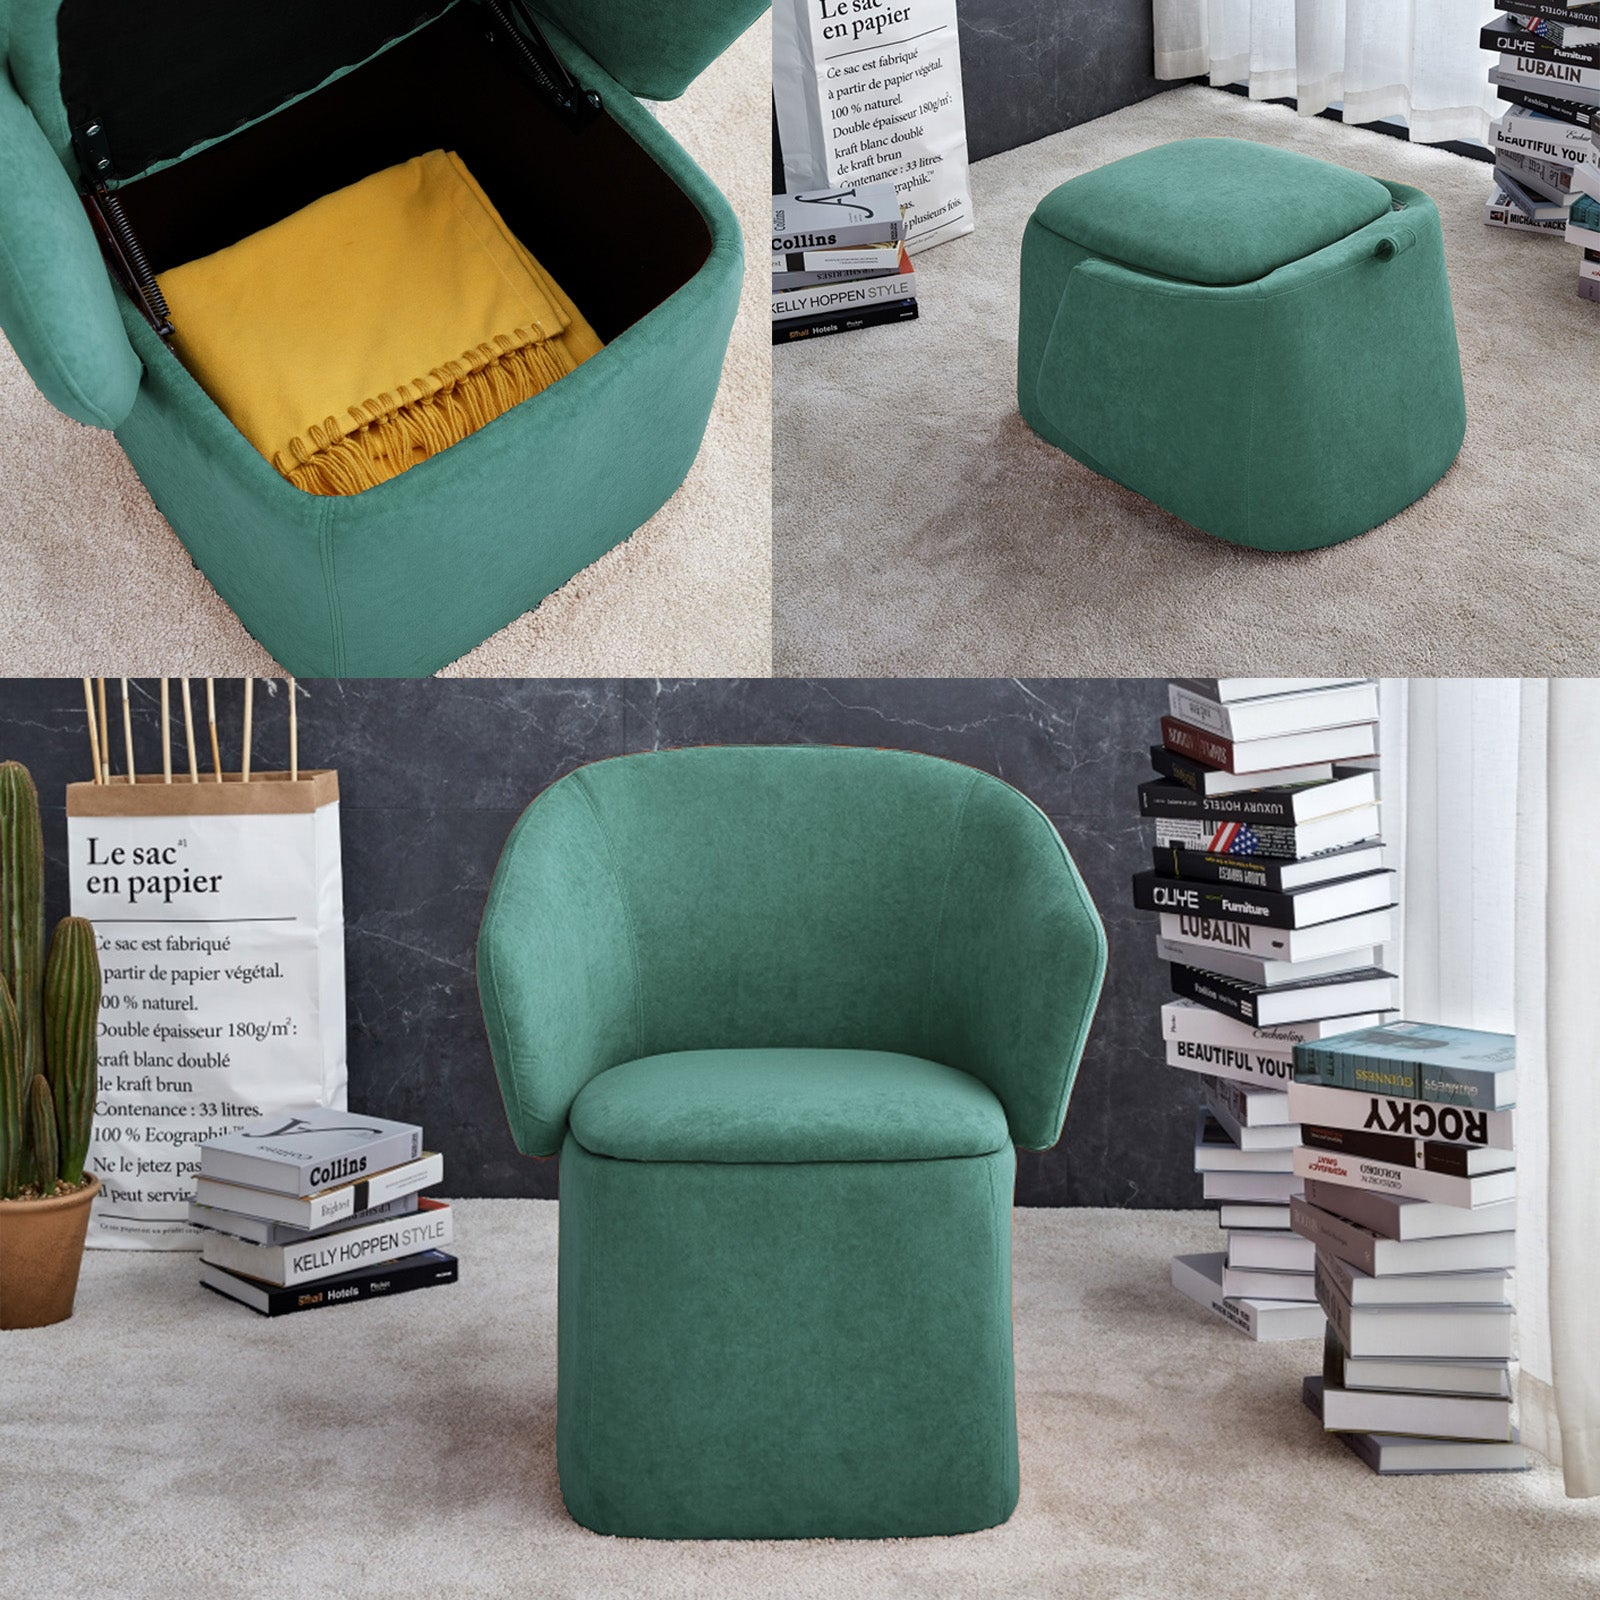 Flexa Chair/stool/storage  B2280-green